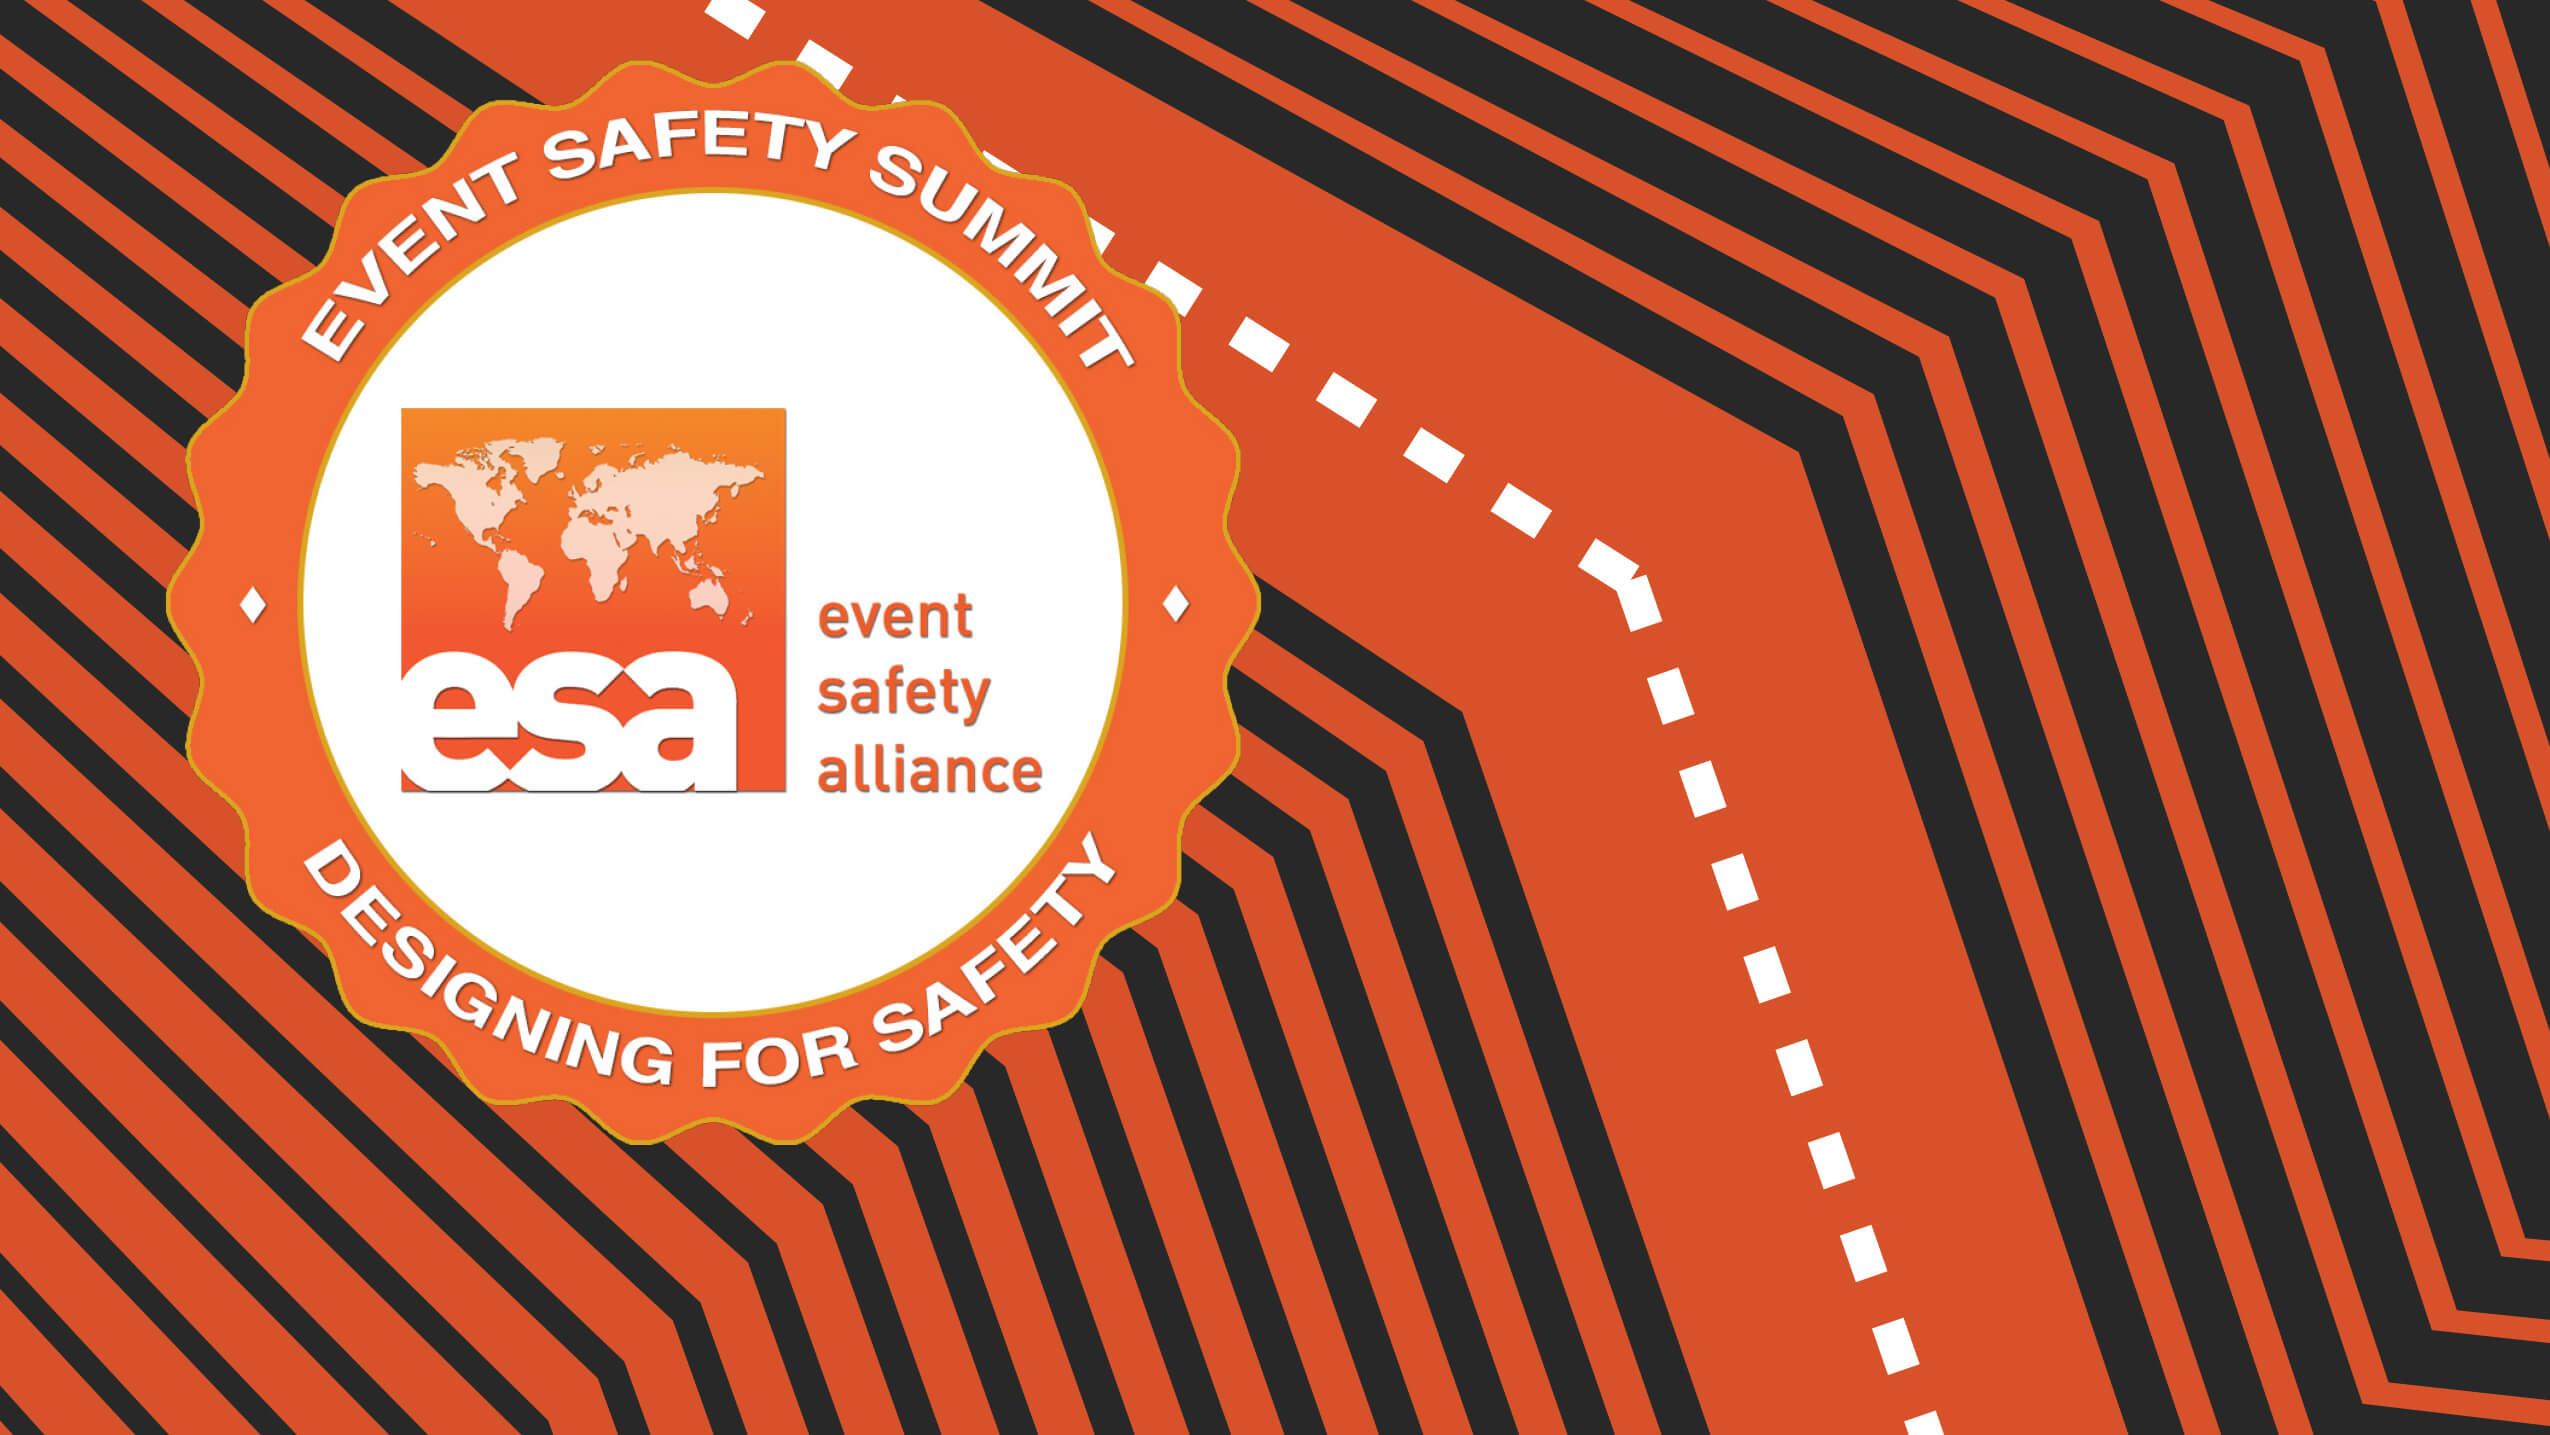 DCI staff attends national Event Safety Alliance Summit